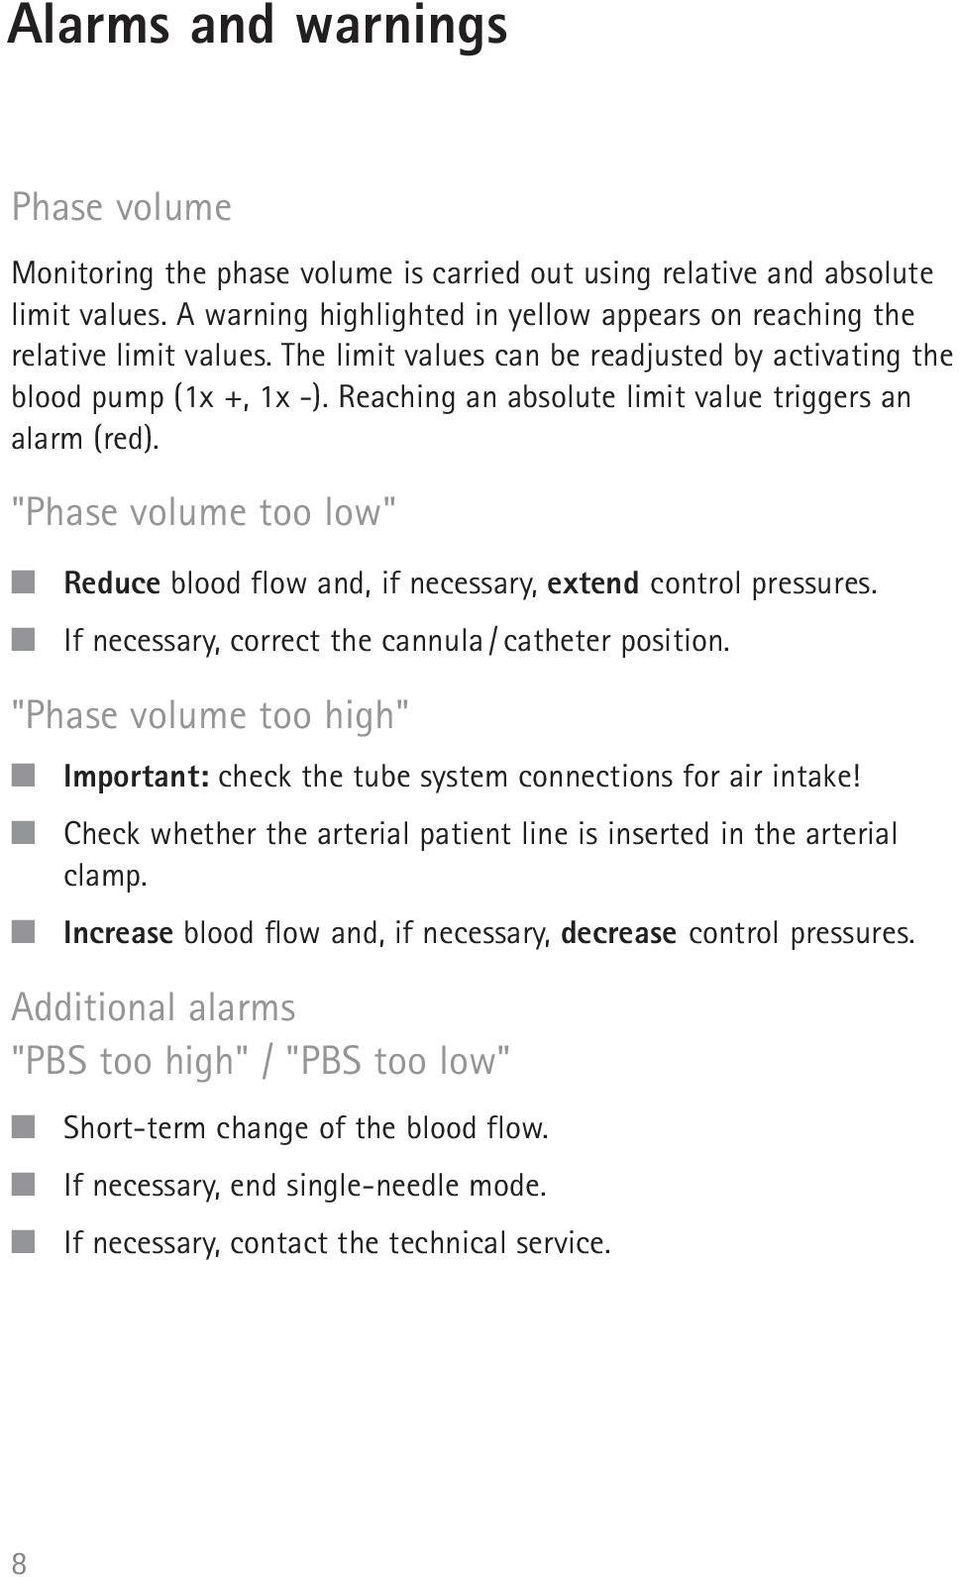 """Phase volume too low"" Reduce blood flow and, if necessary, extend control pressures. If necessary, correct the cannula / catheter position."